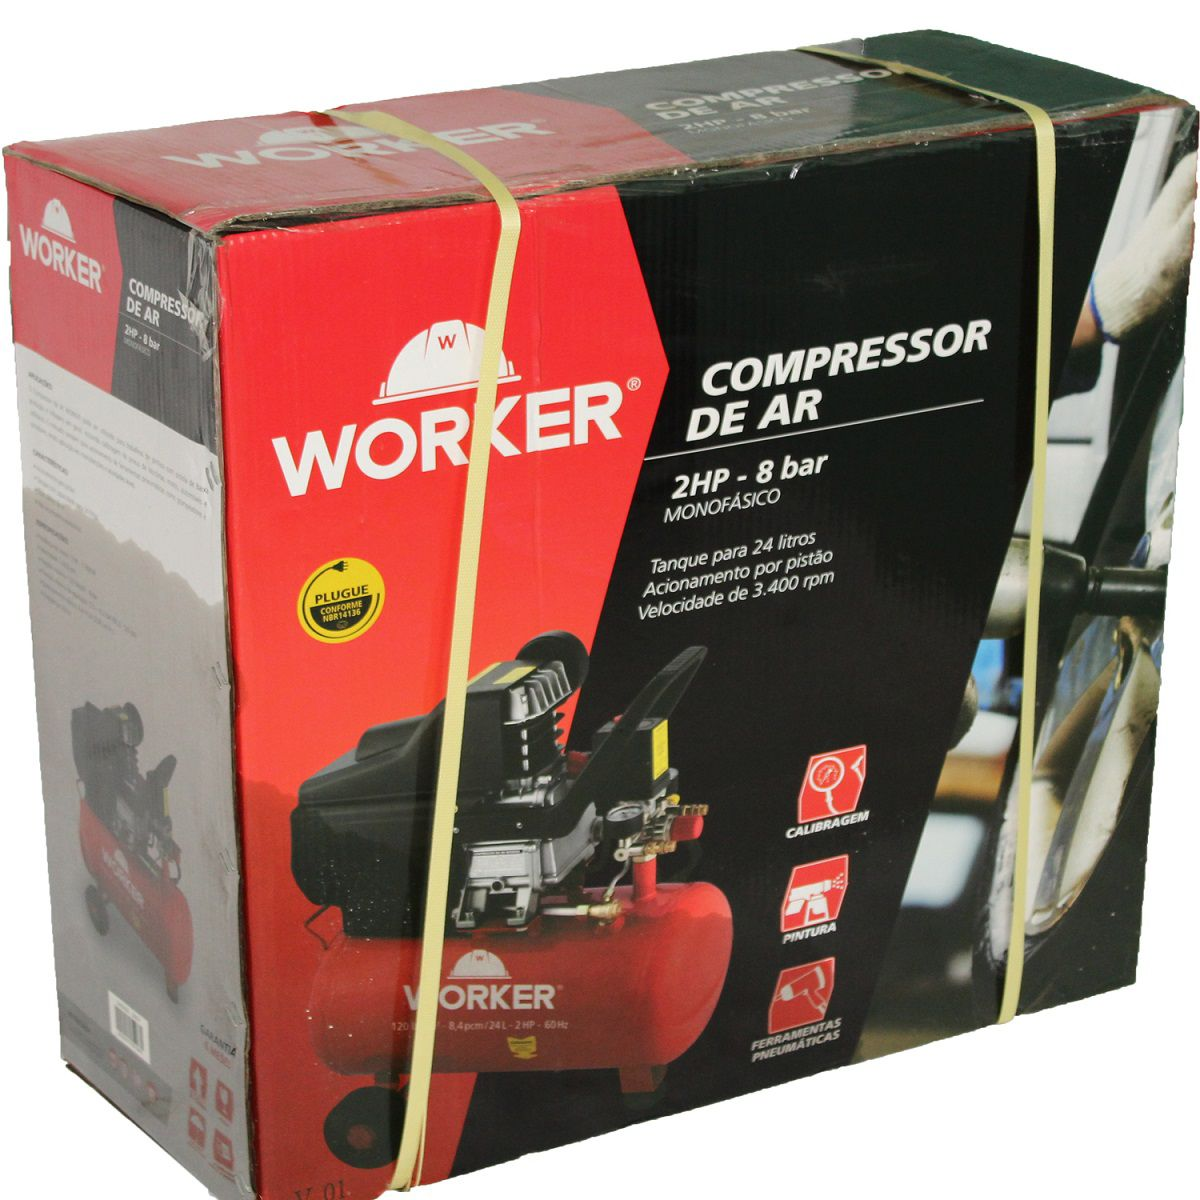 Compressor de Ar 24L 2HP 8BAR Worker